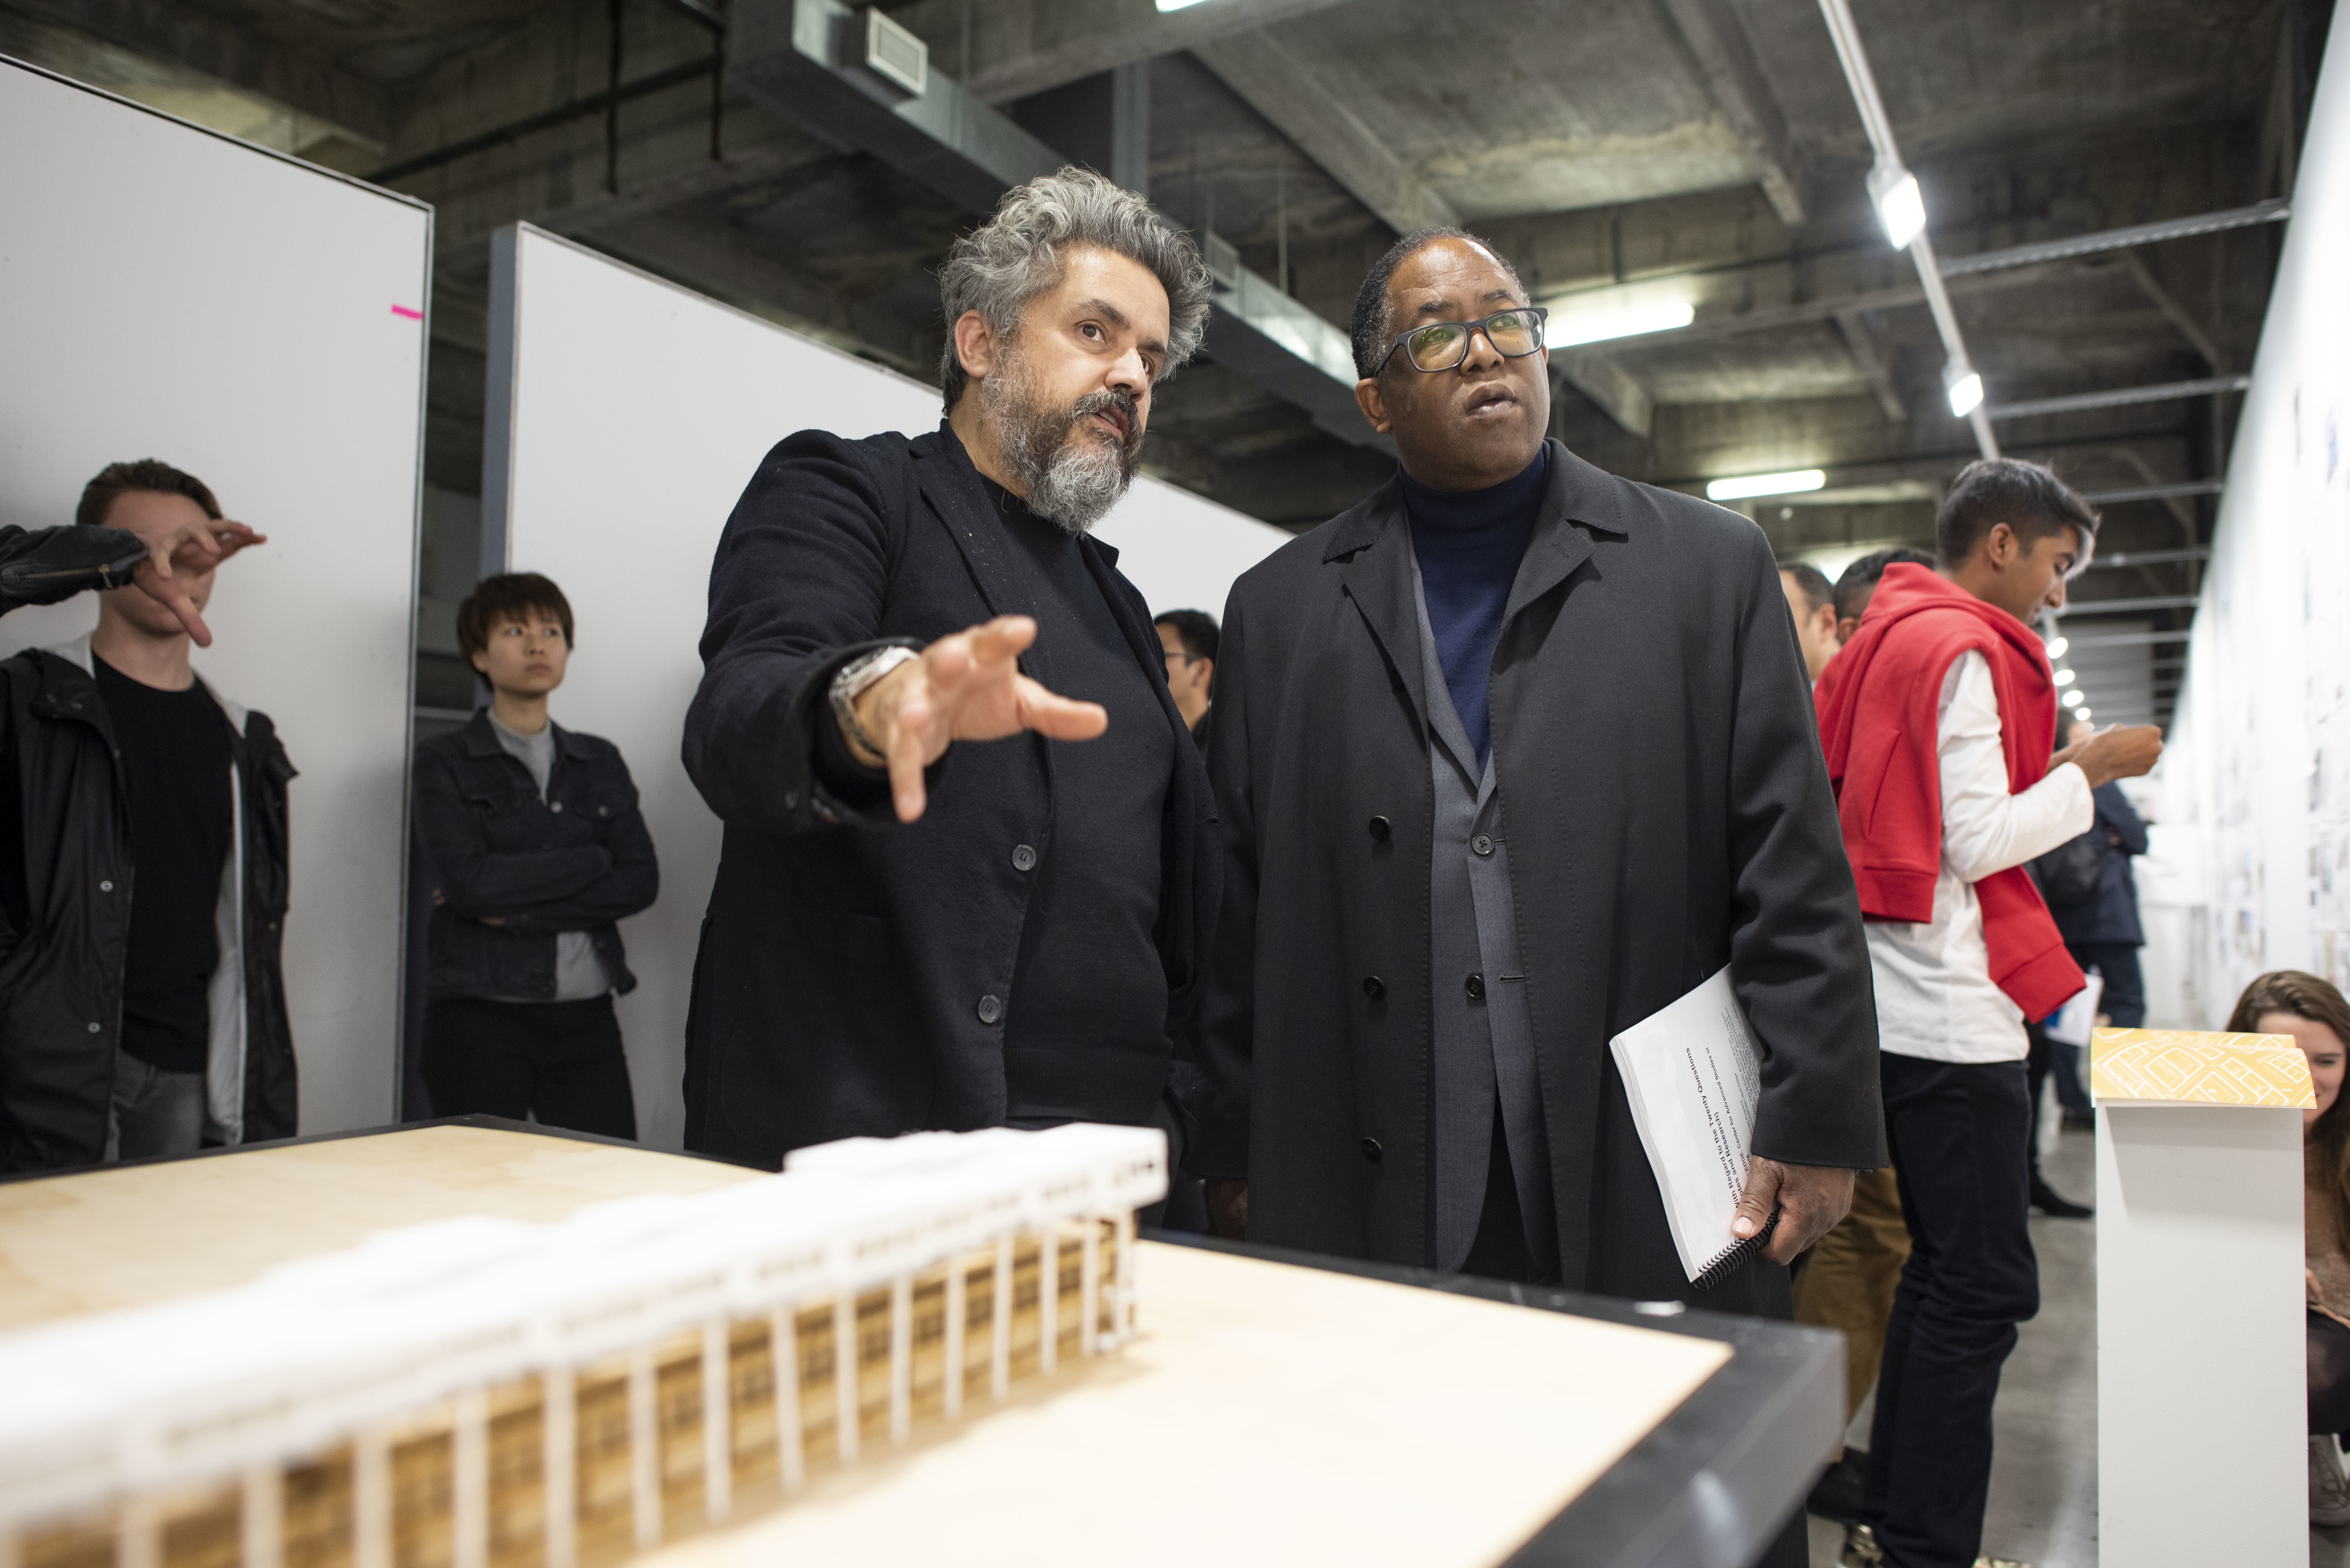 Hernan Diaz Alonso with Mark Ridley-Thomas, Los Angeles County Board of Supervisors for the 2nd District, at the SCI-Arc Homelessness Charrette in January 2019